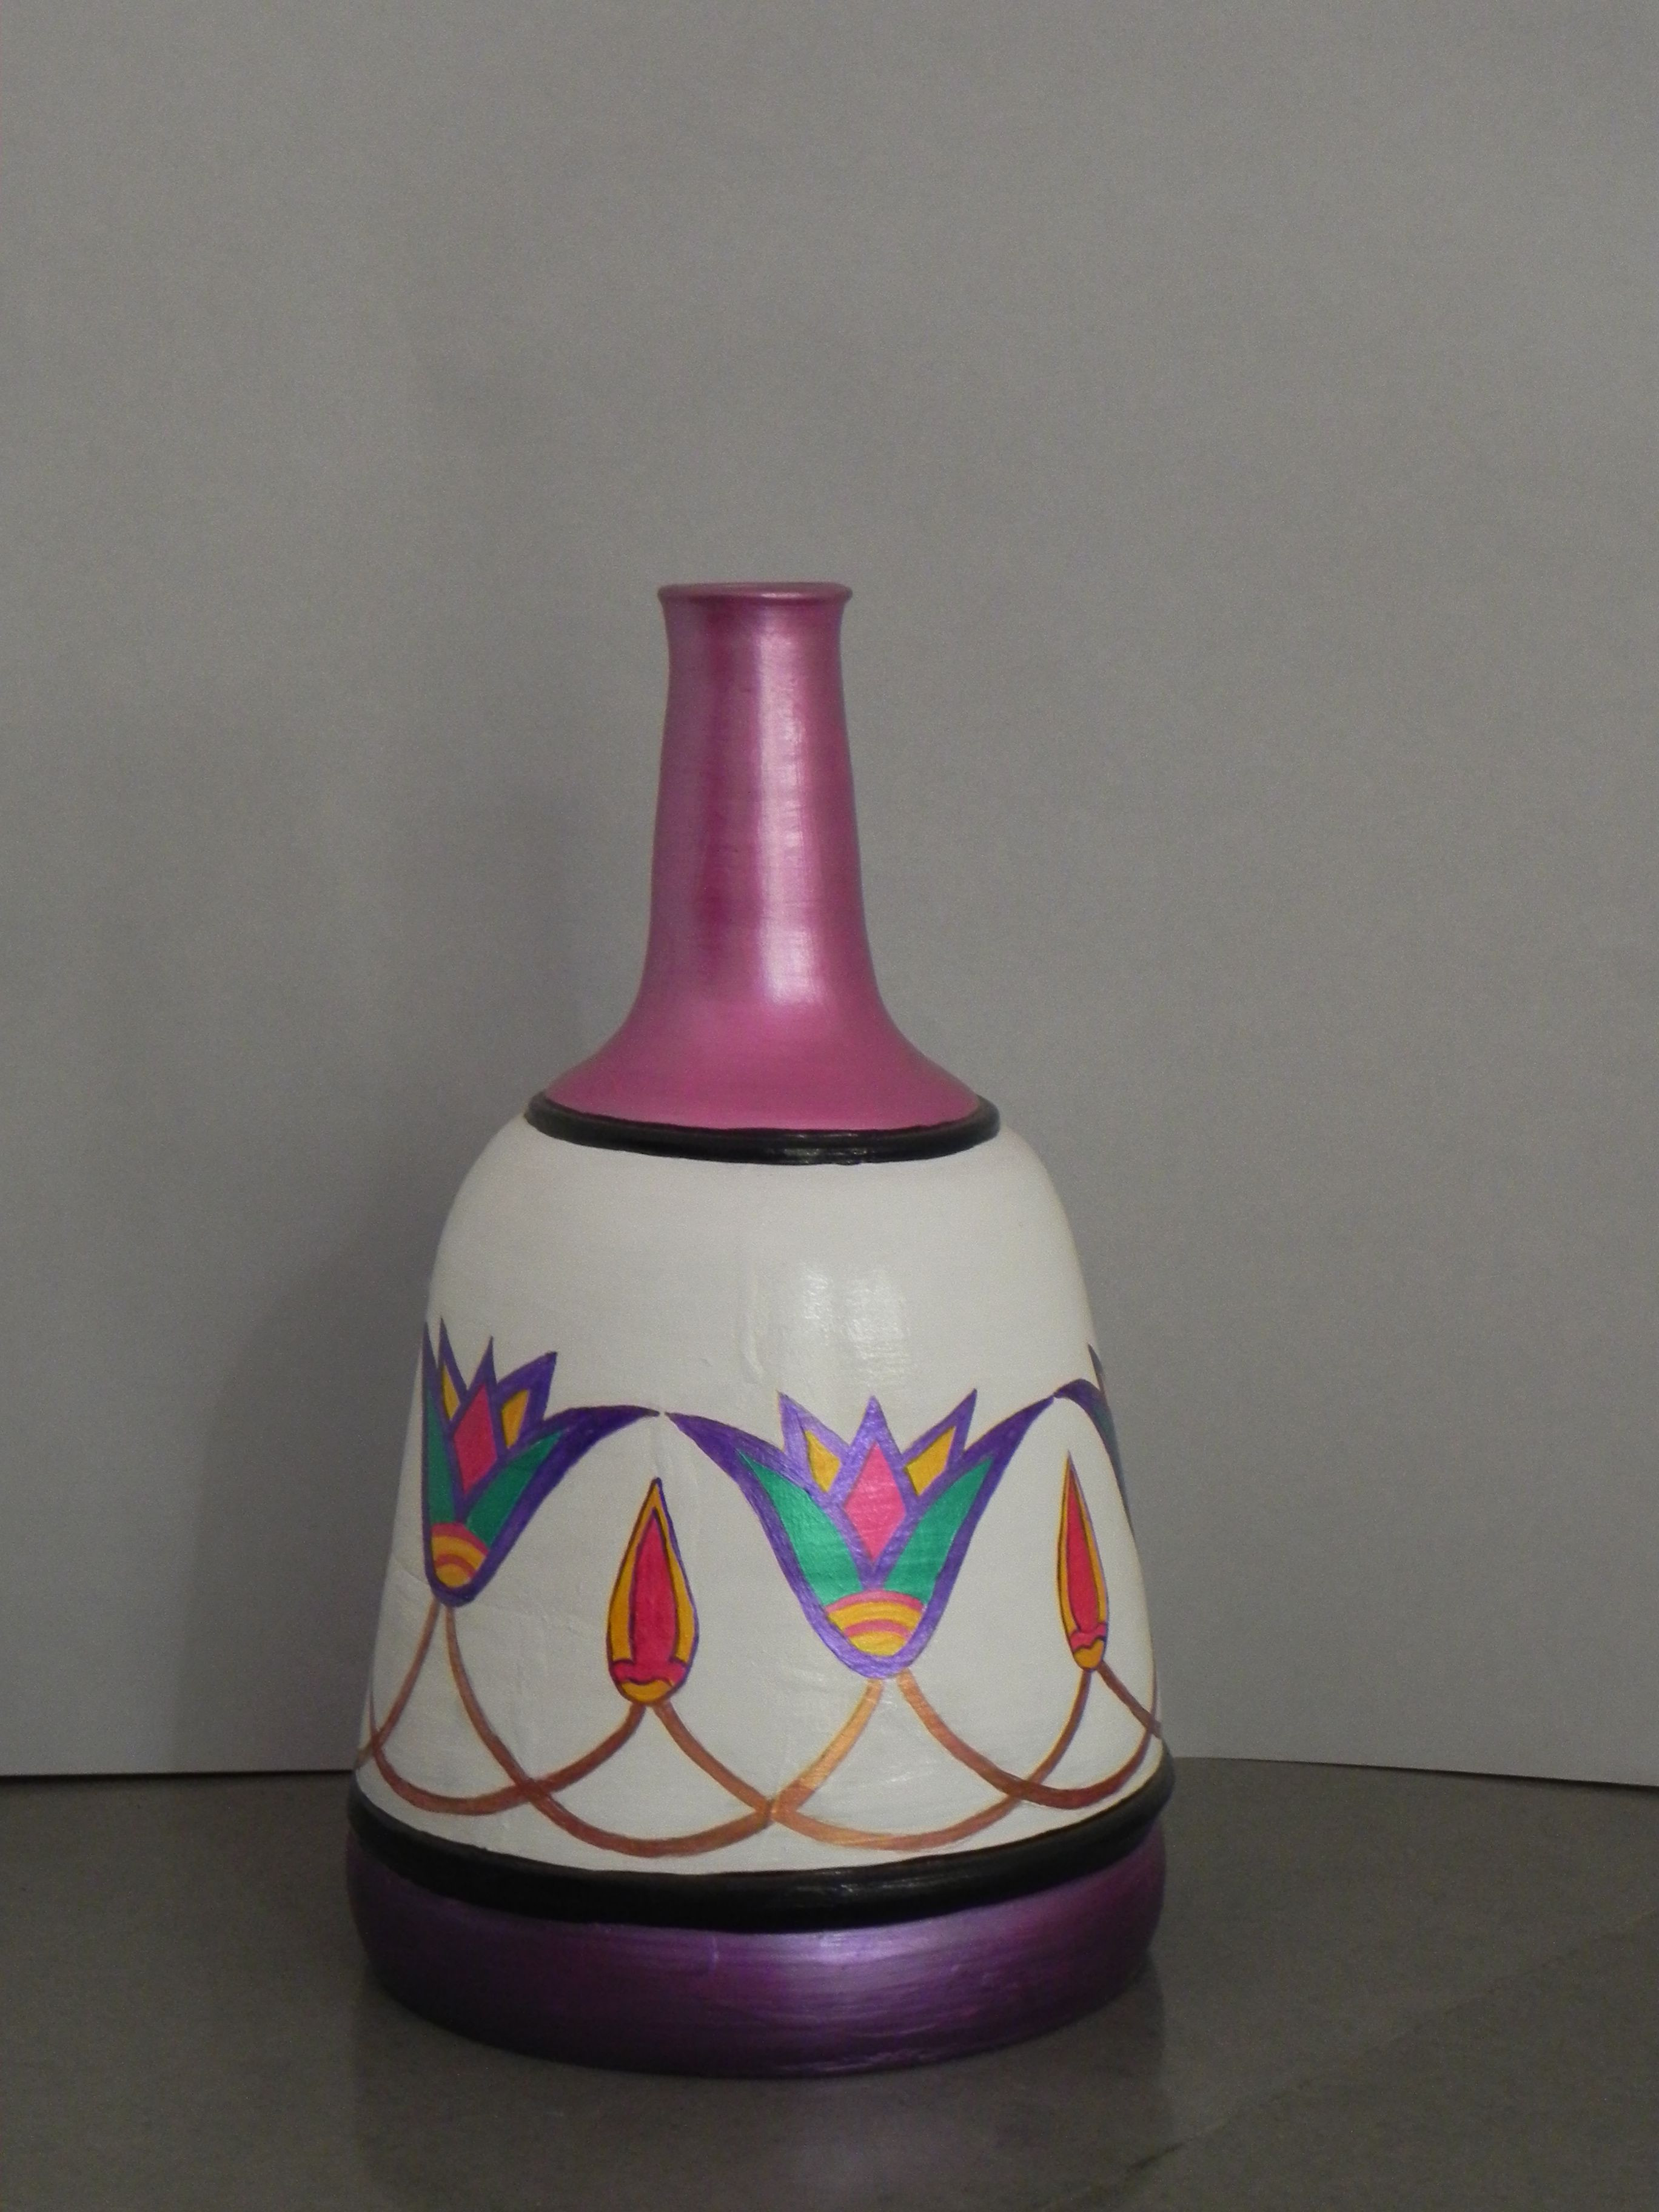 terracotta vase of egyptian style pot floral design in egyptian style white background pertaining to egyptian style pot floral design in egyptian style white background pink neck violet bottom size 15 5 tall x 9